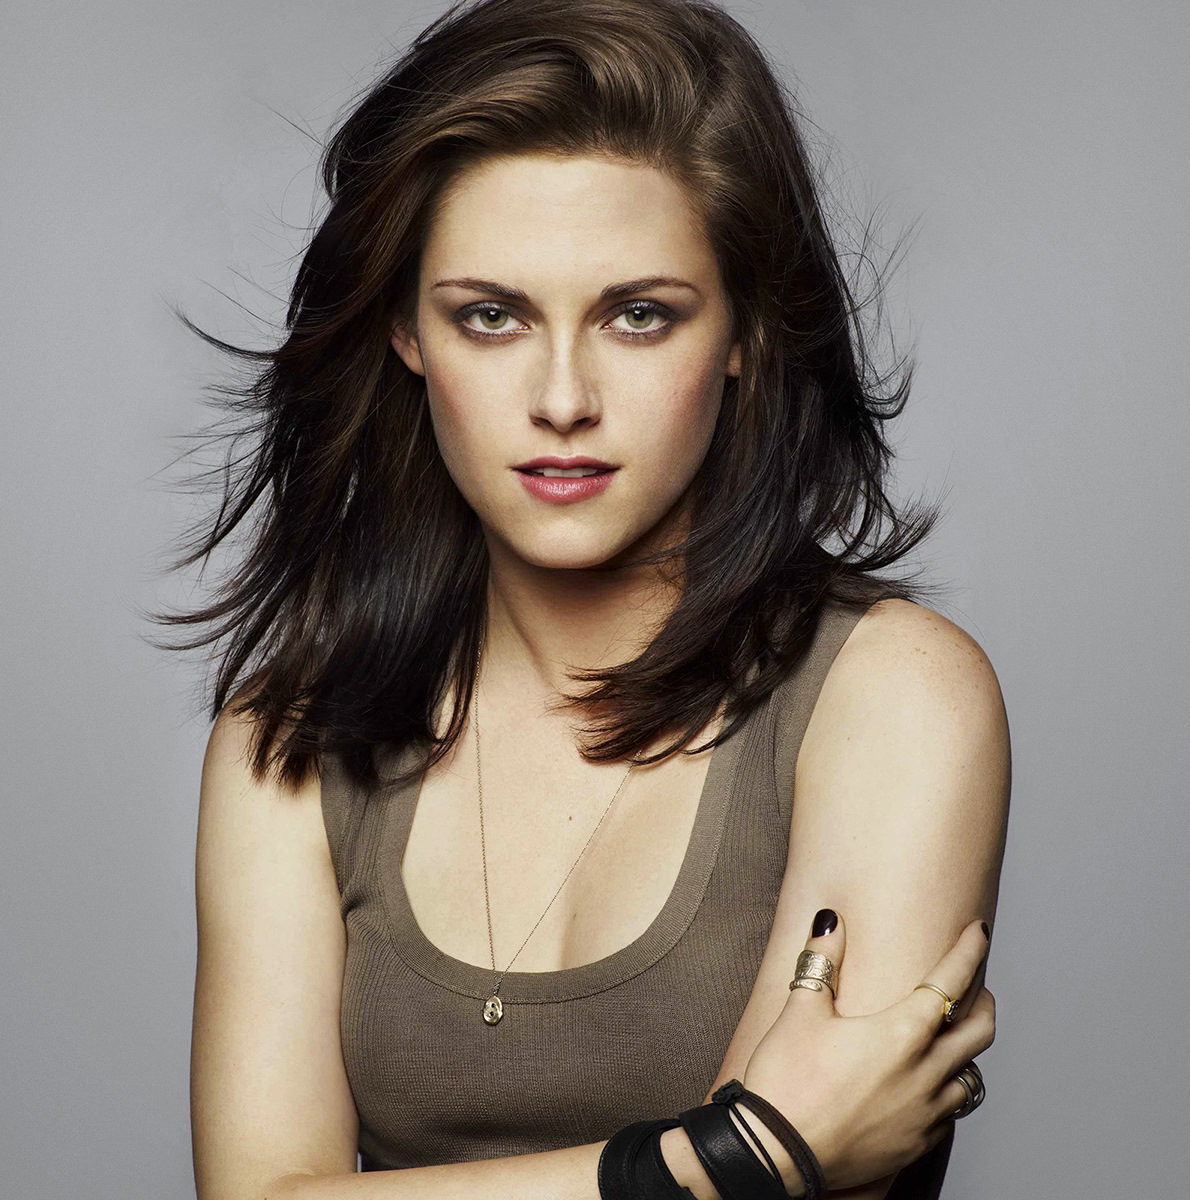 BOLLYWORLD: Twilight Girl Kristen Stewart Wants To Work